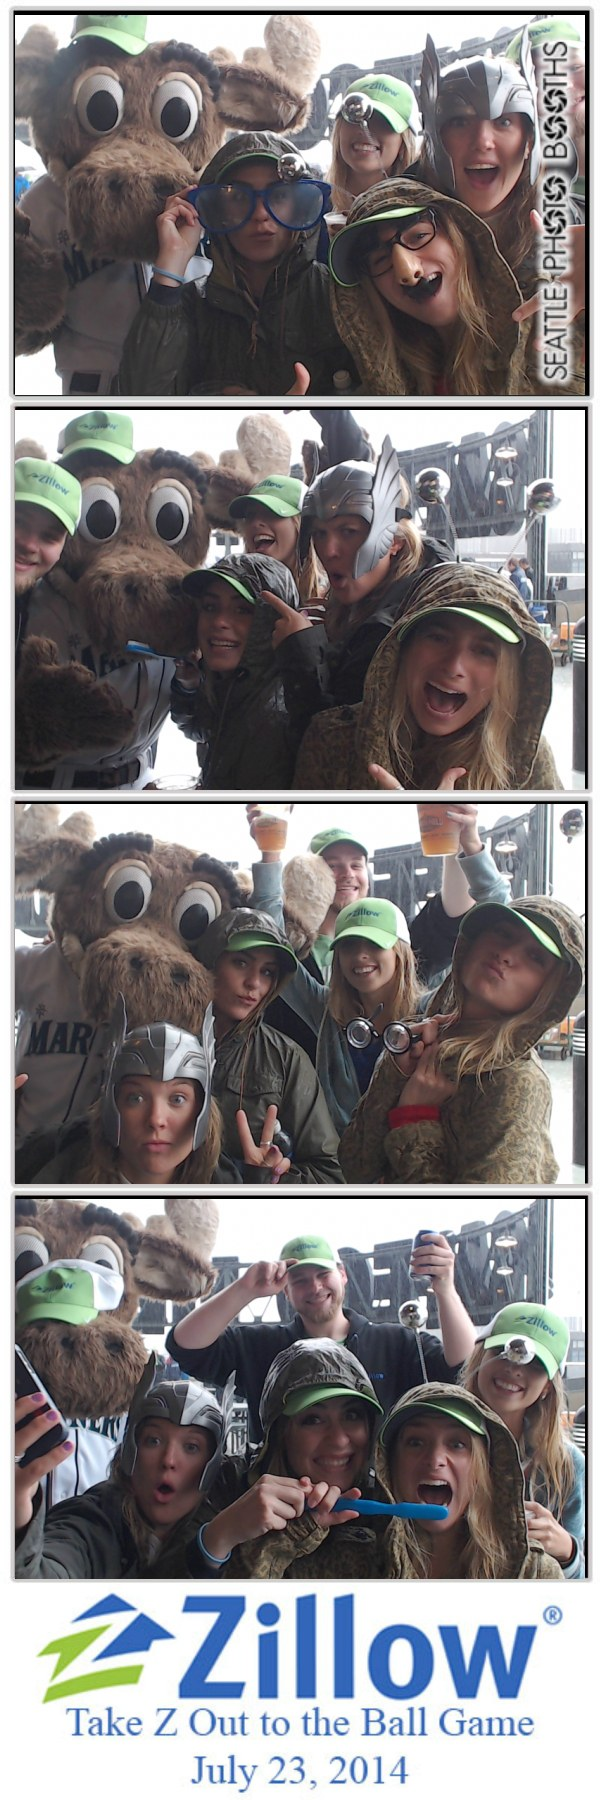 The Mariner Moose joins Zillow employees in the photo booth before the Mariners game.